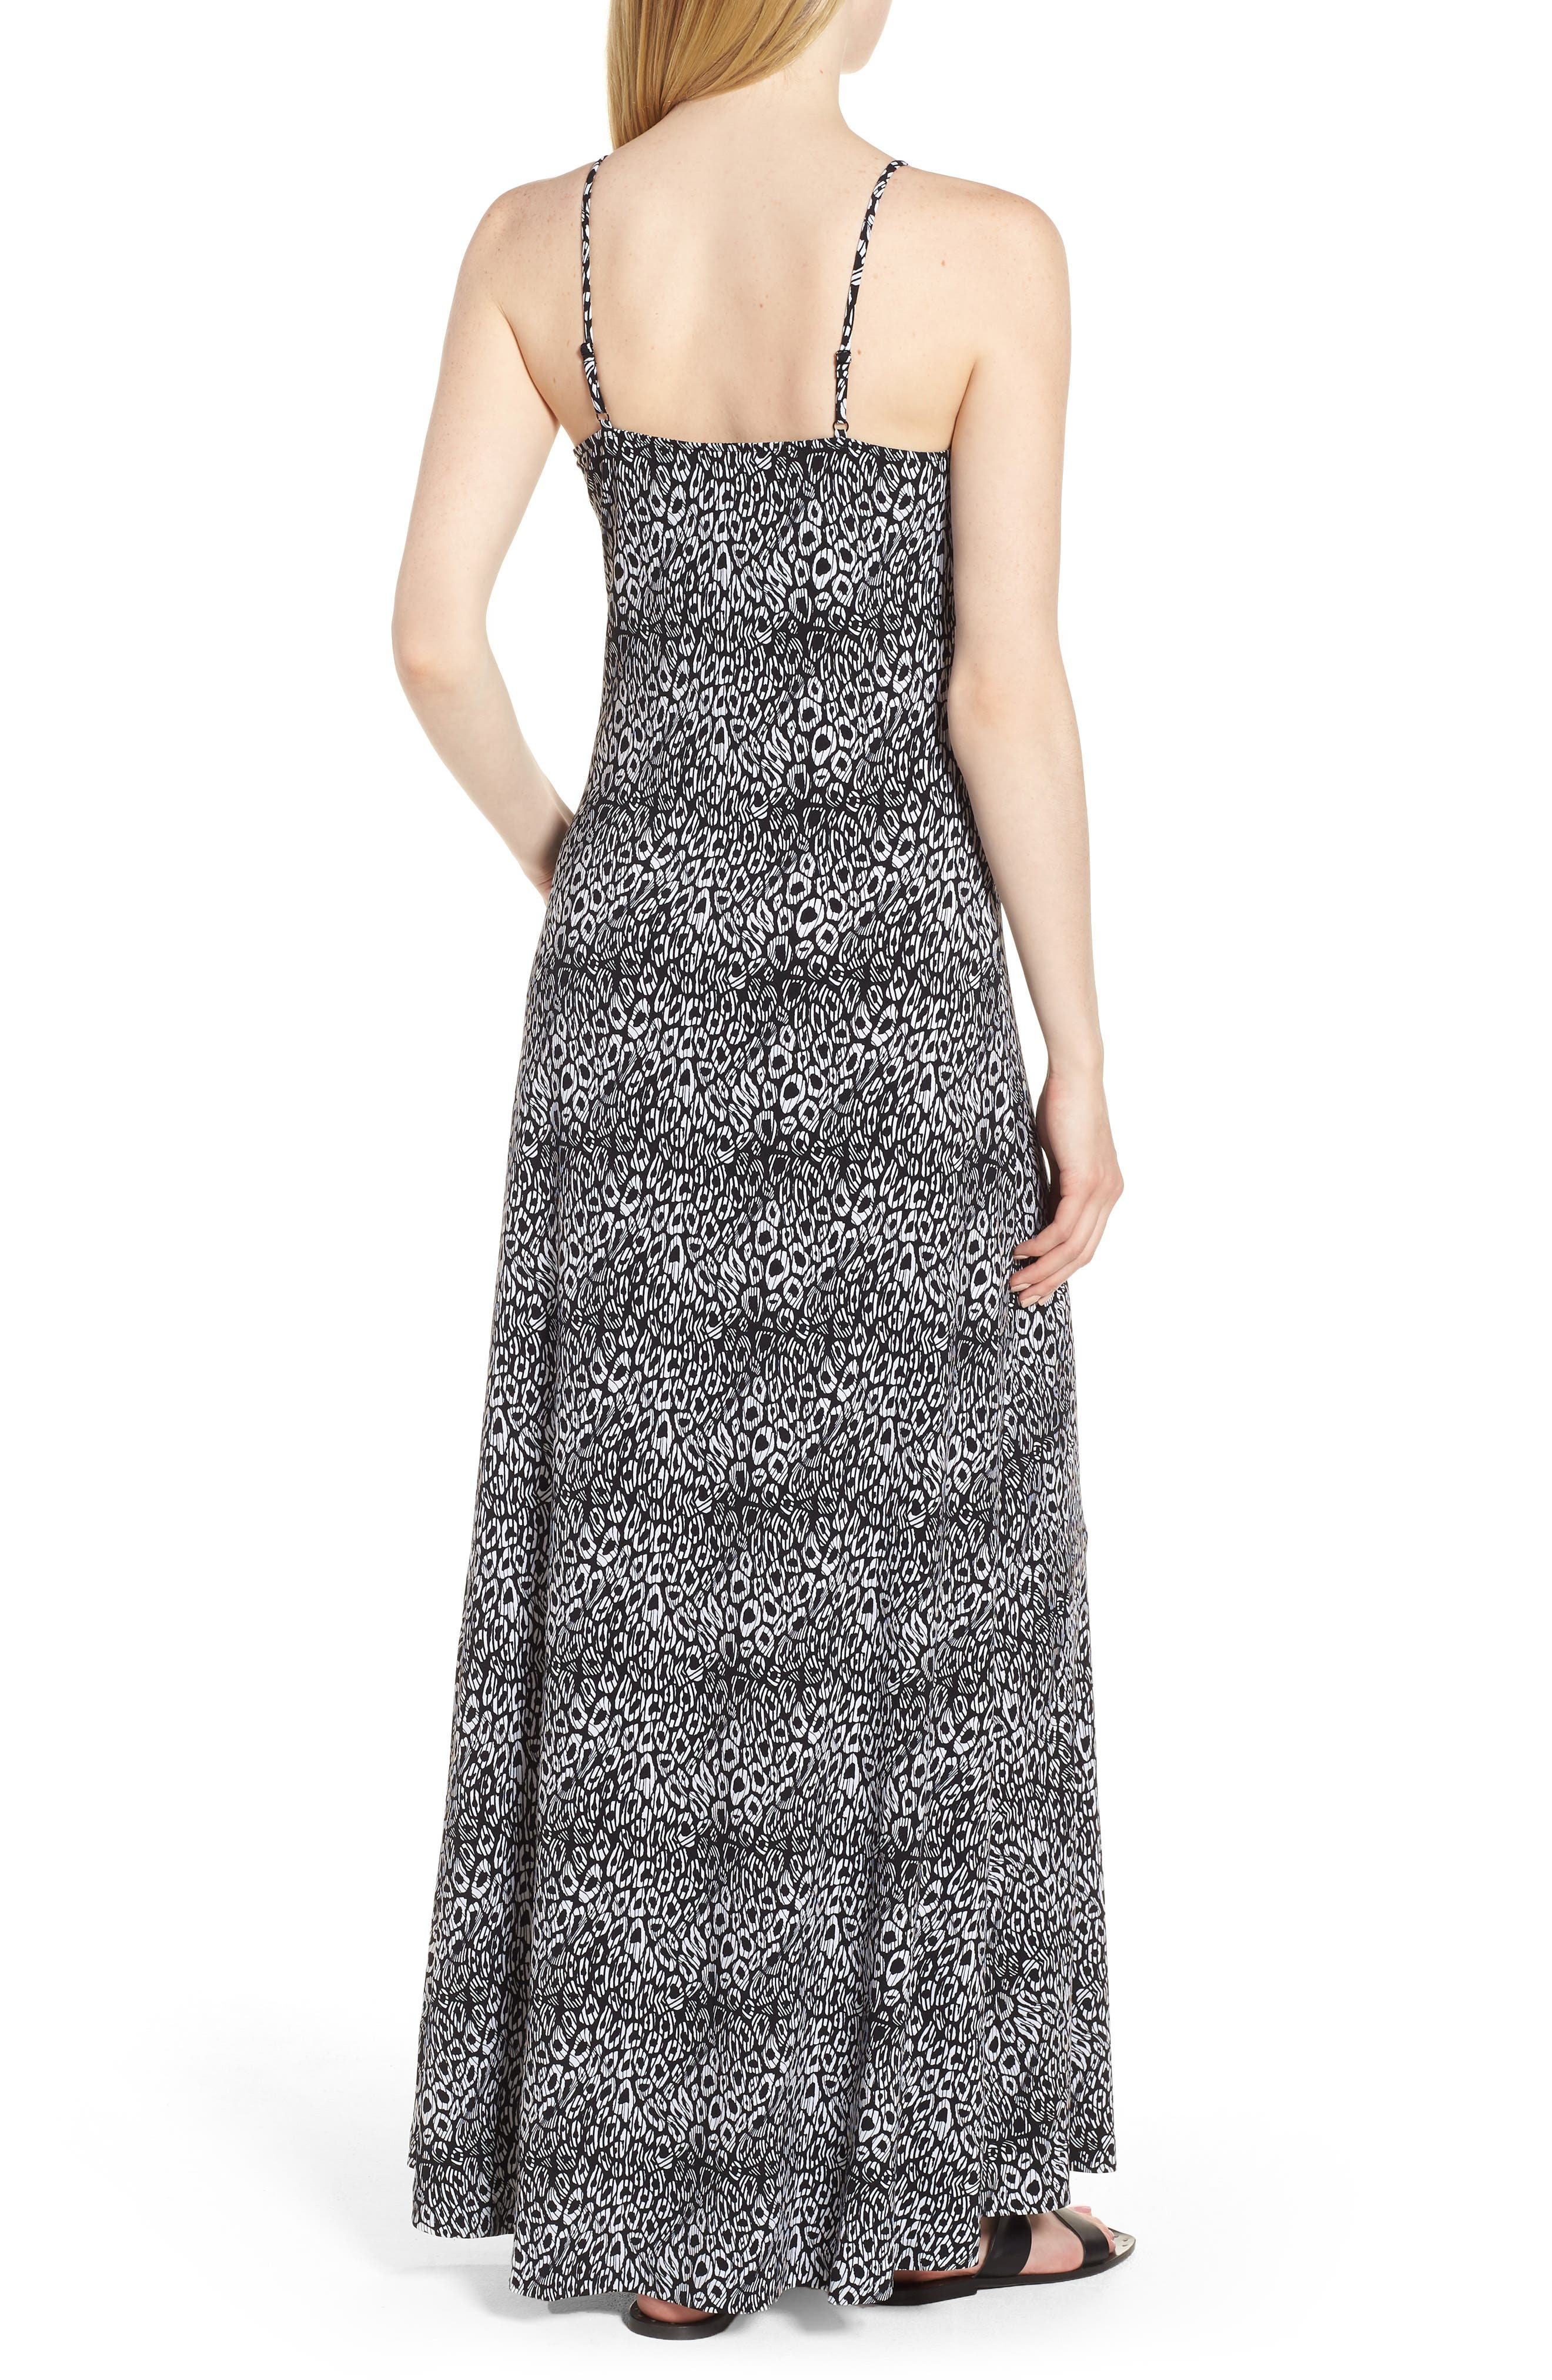 Wavy Leopard Print Tank Maxi Dress,                             Alternate thumbnail 2, color,                             001